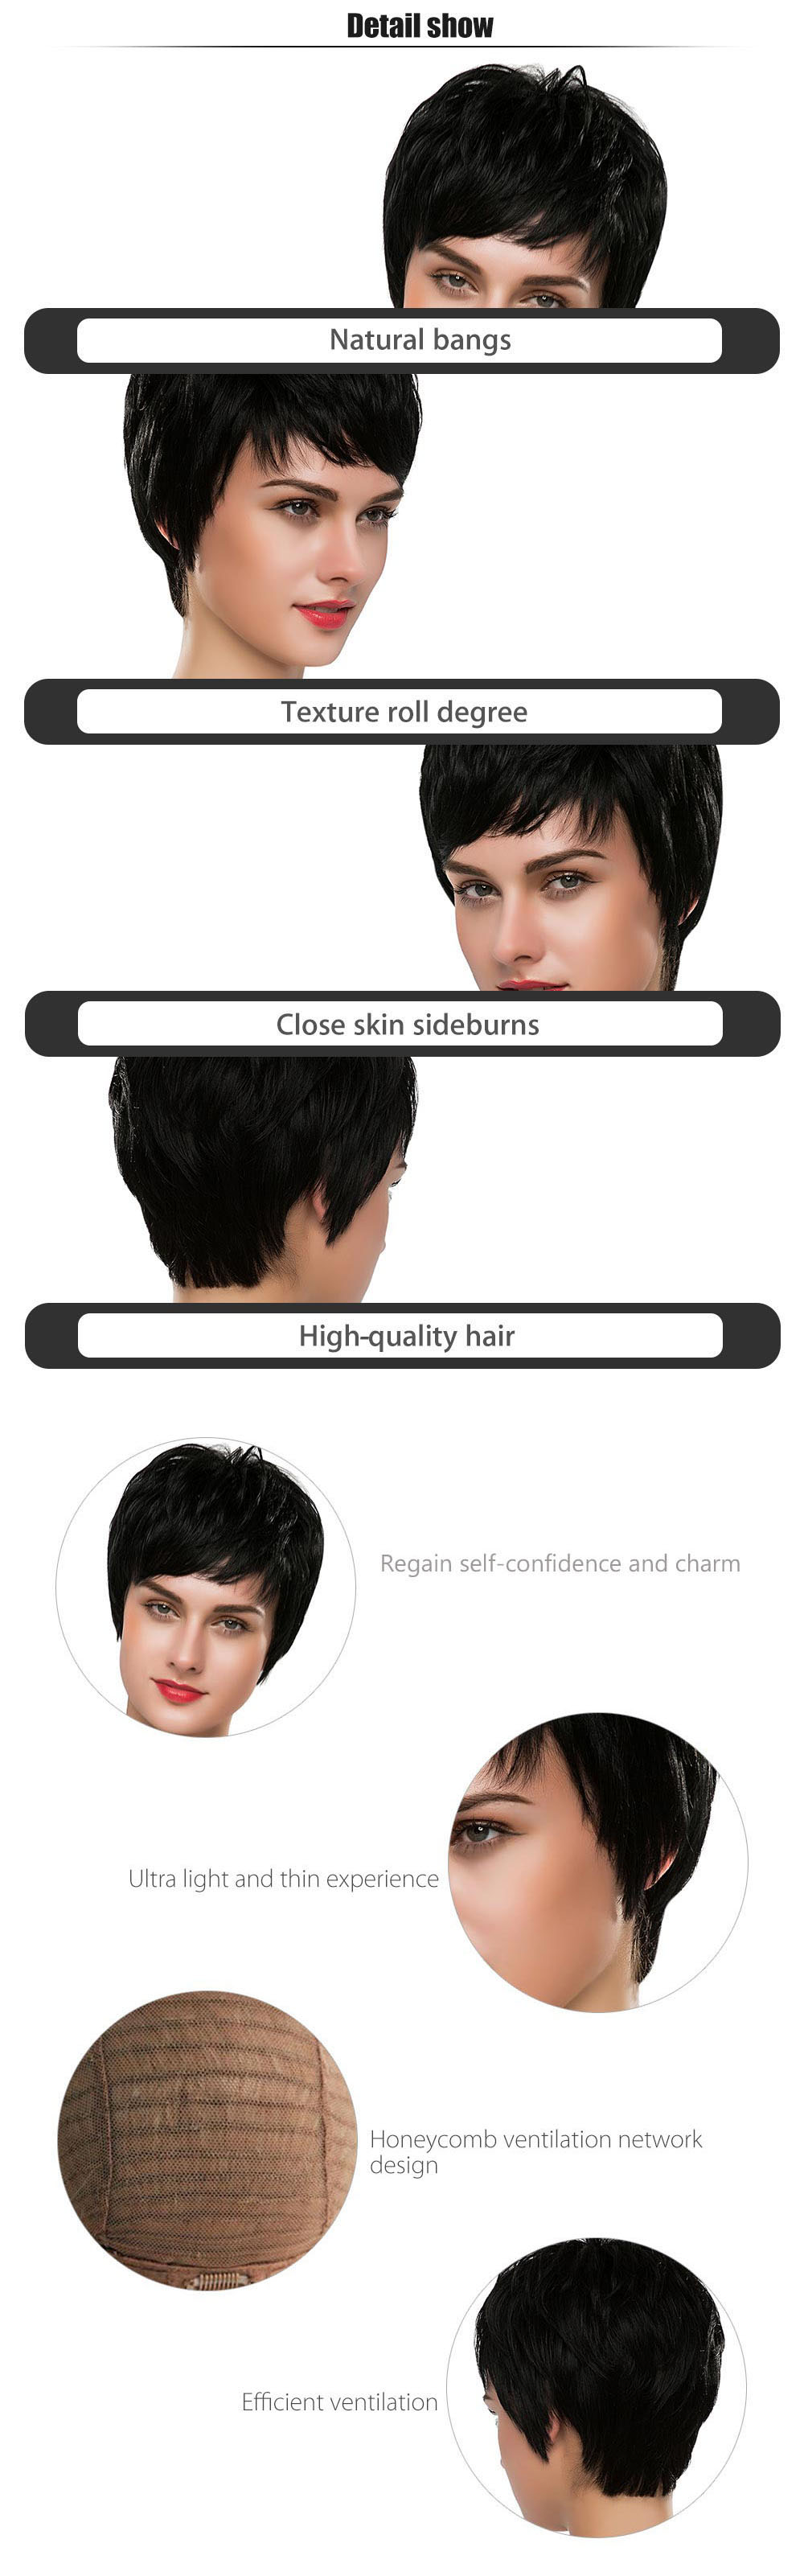 EMMOR Stylish Short Straight Capless Full Human Hair Wigs with Side Bangs